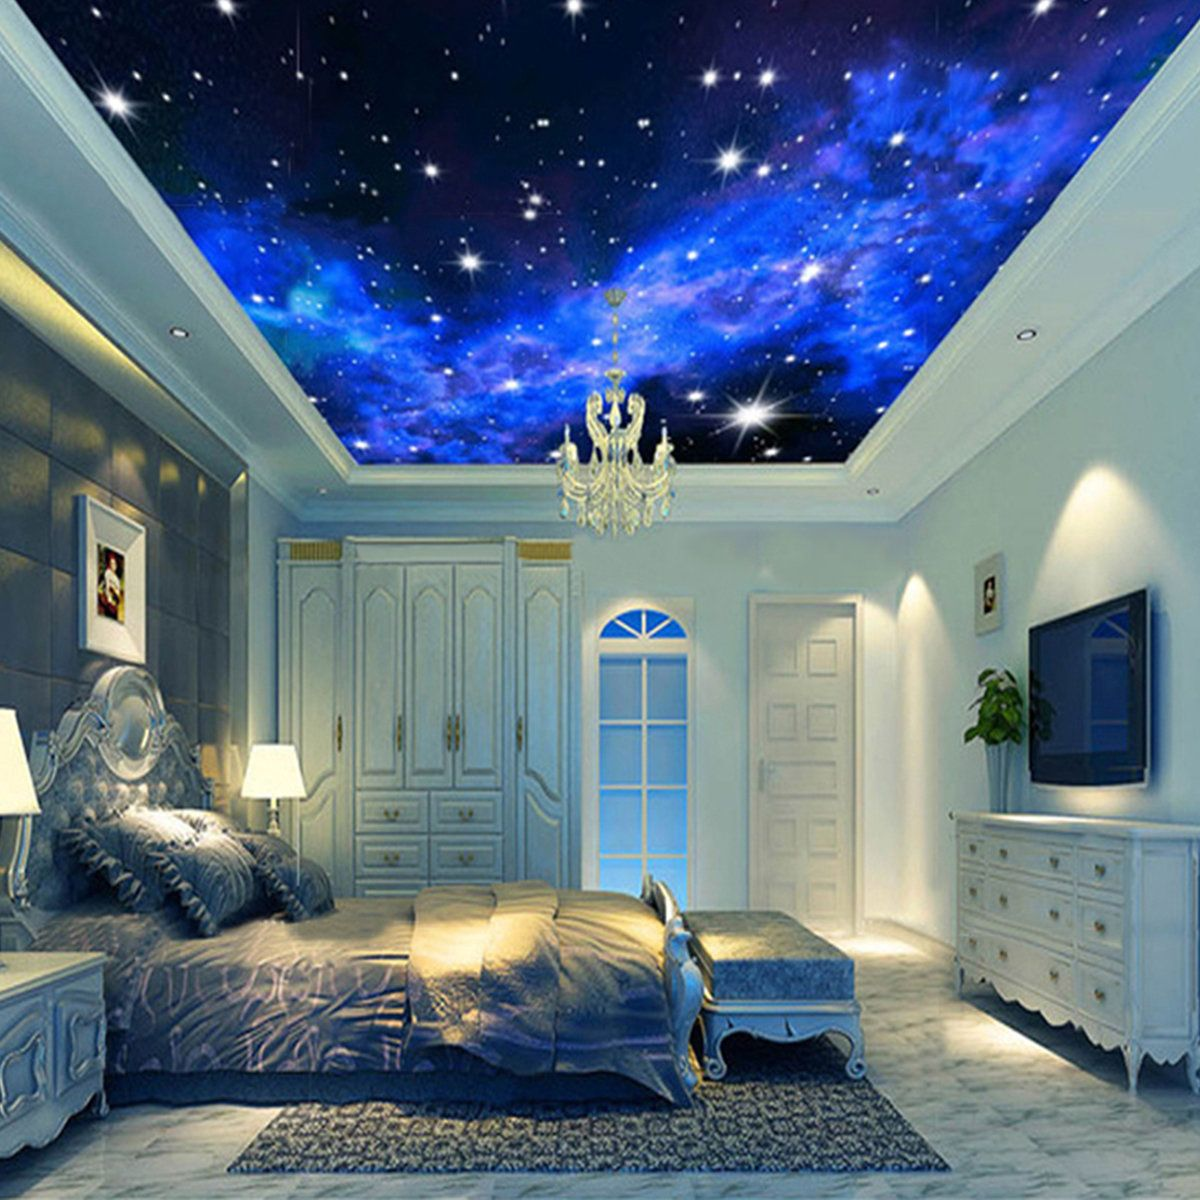 3d wallpaper mural night clouds star sky wall paper for Wallpaper decoration for home